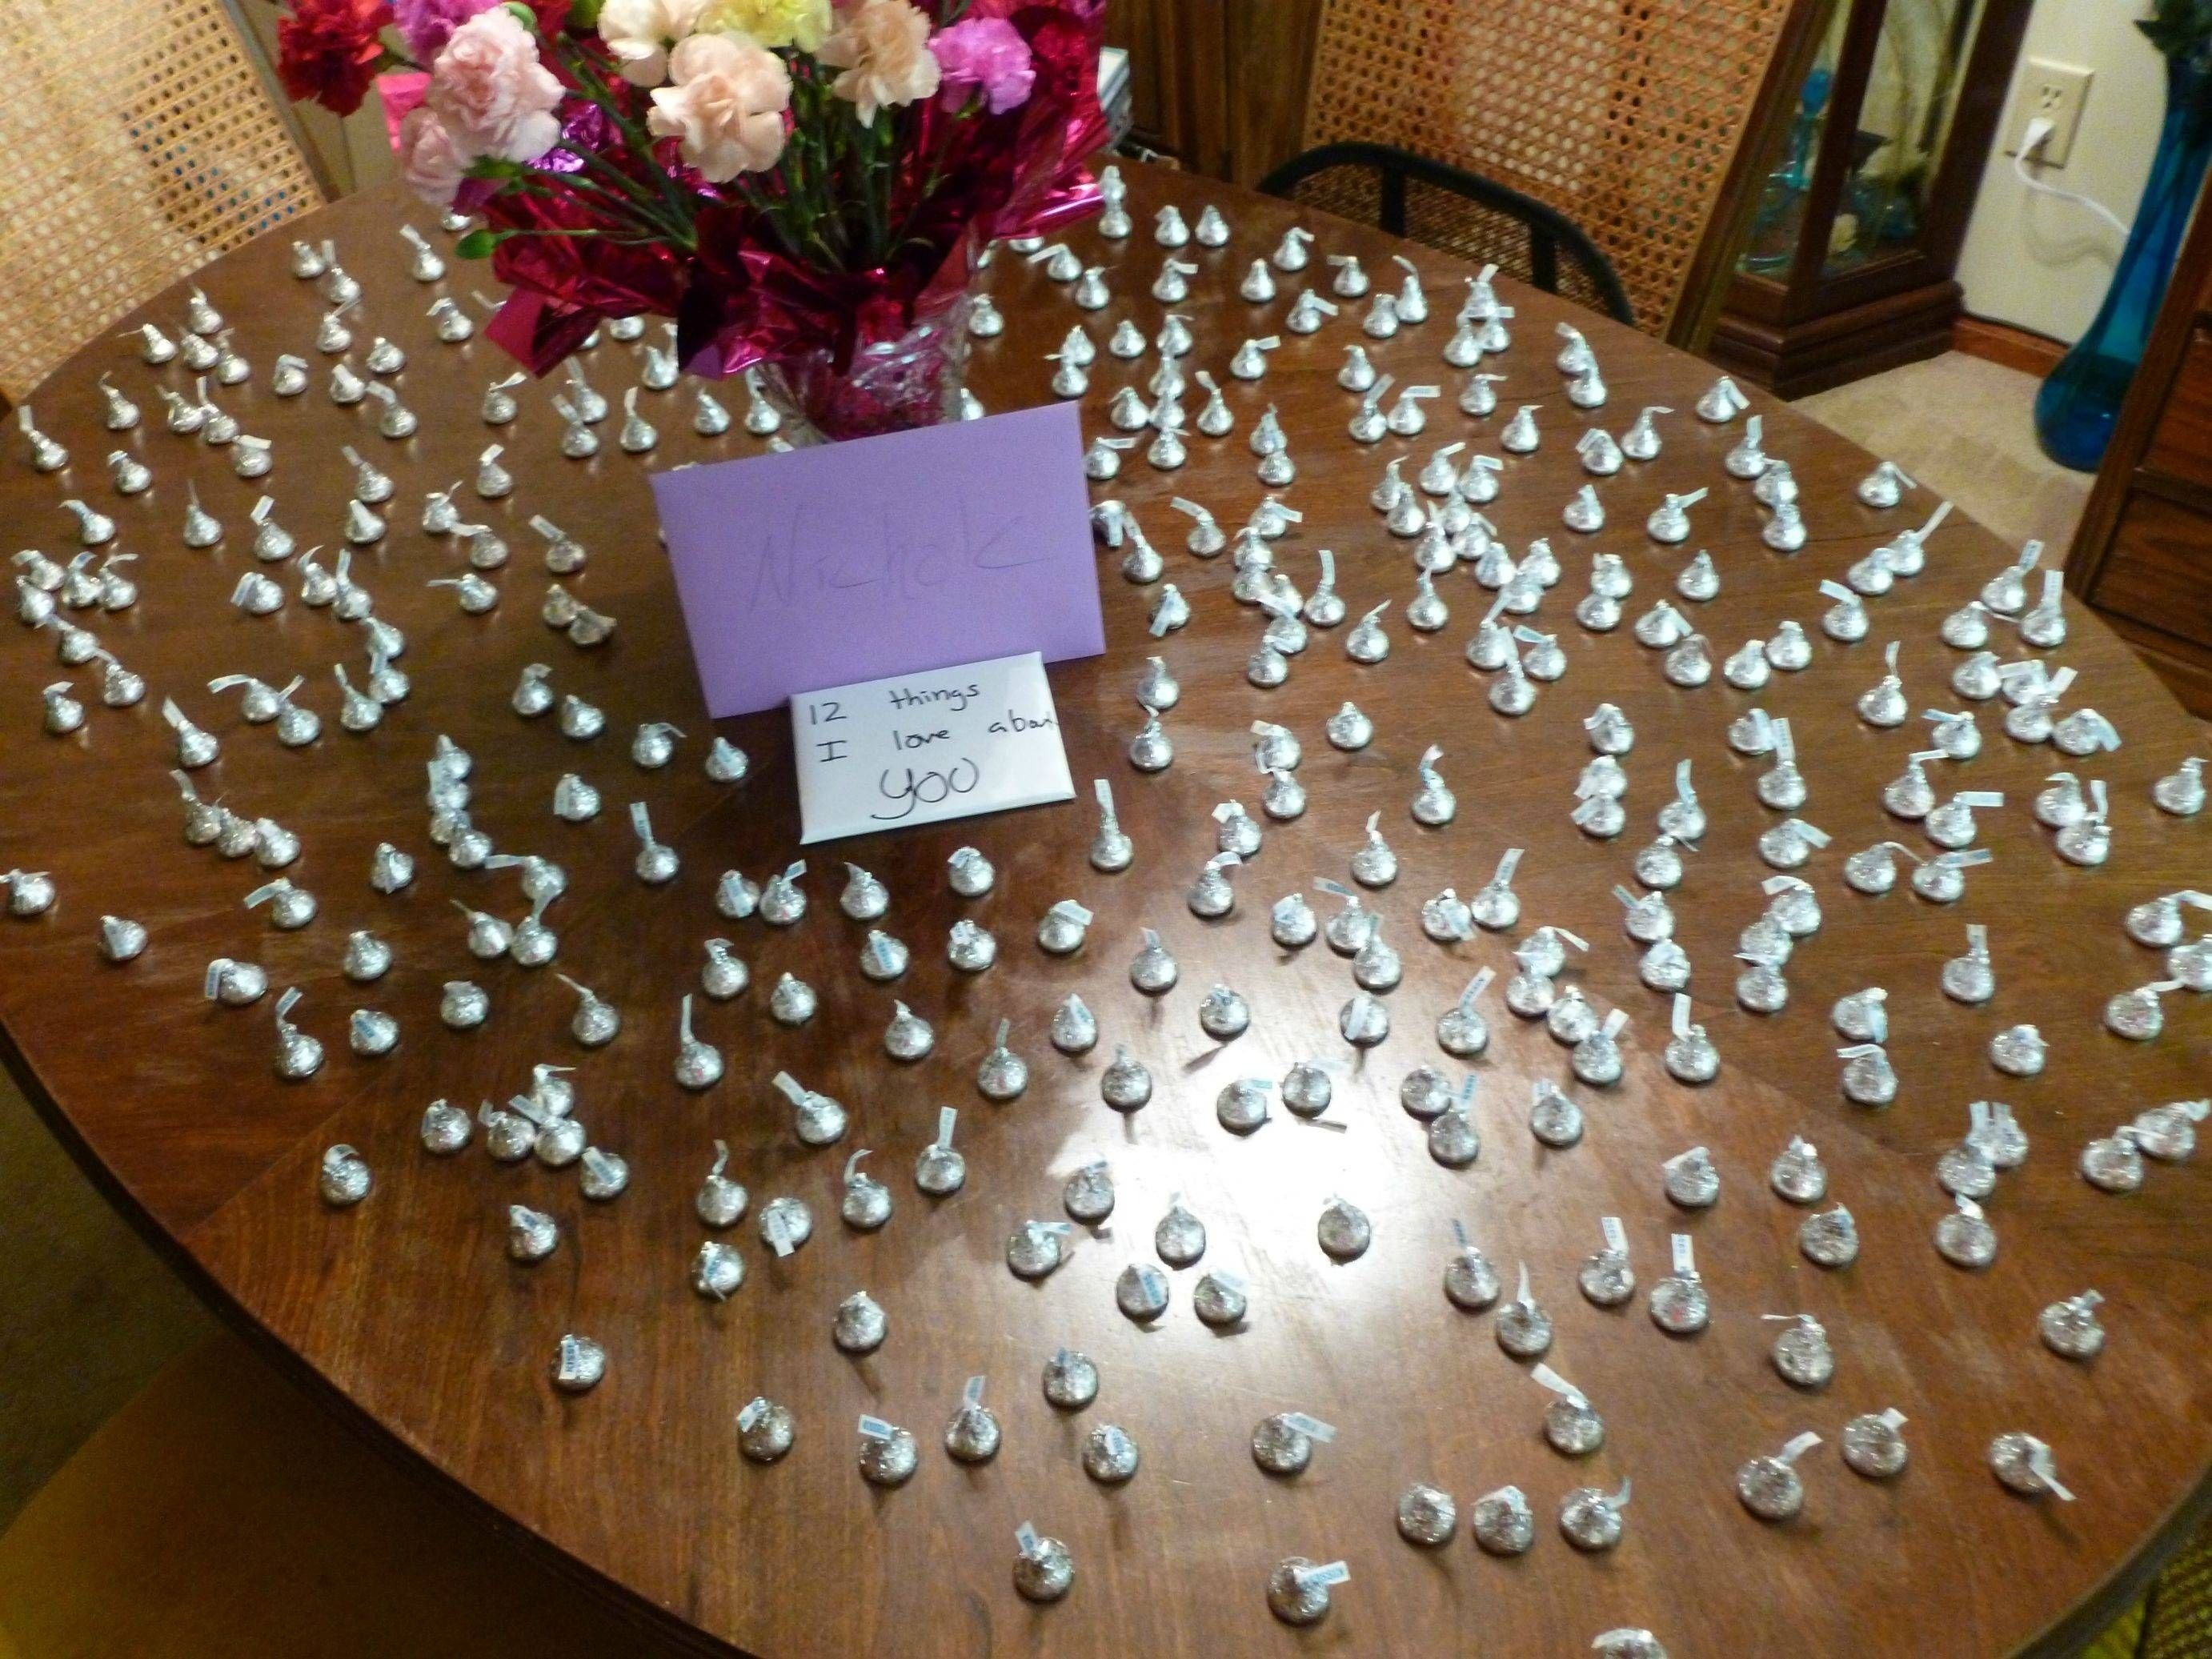 for my girlfriend and my 1 year, i bought her 365 kisses, 52 flowers